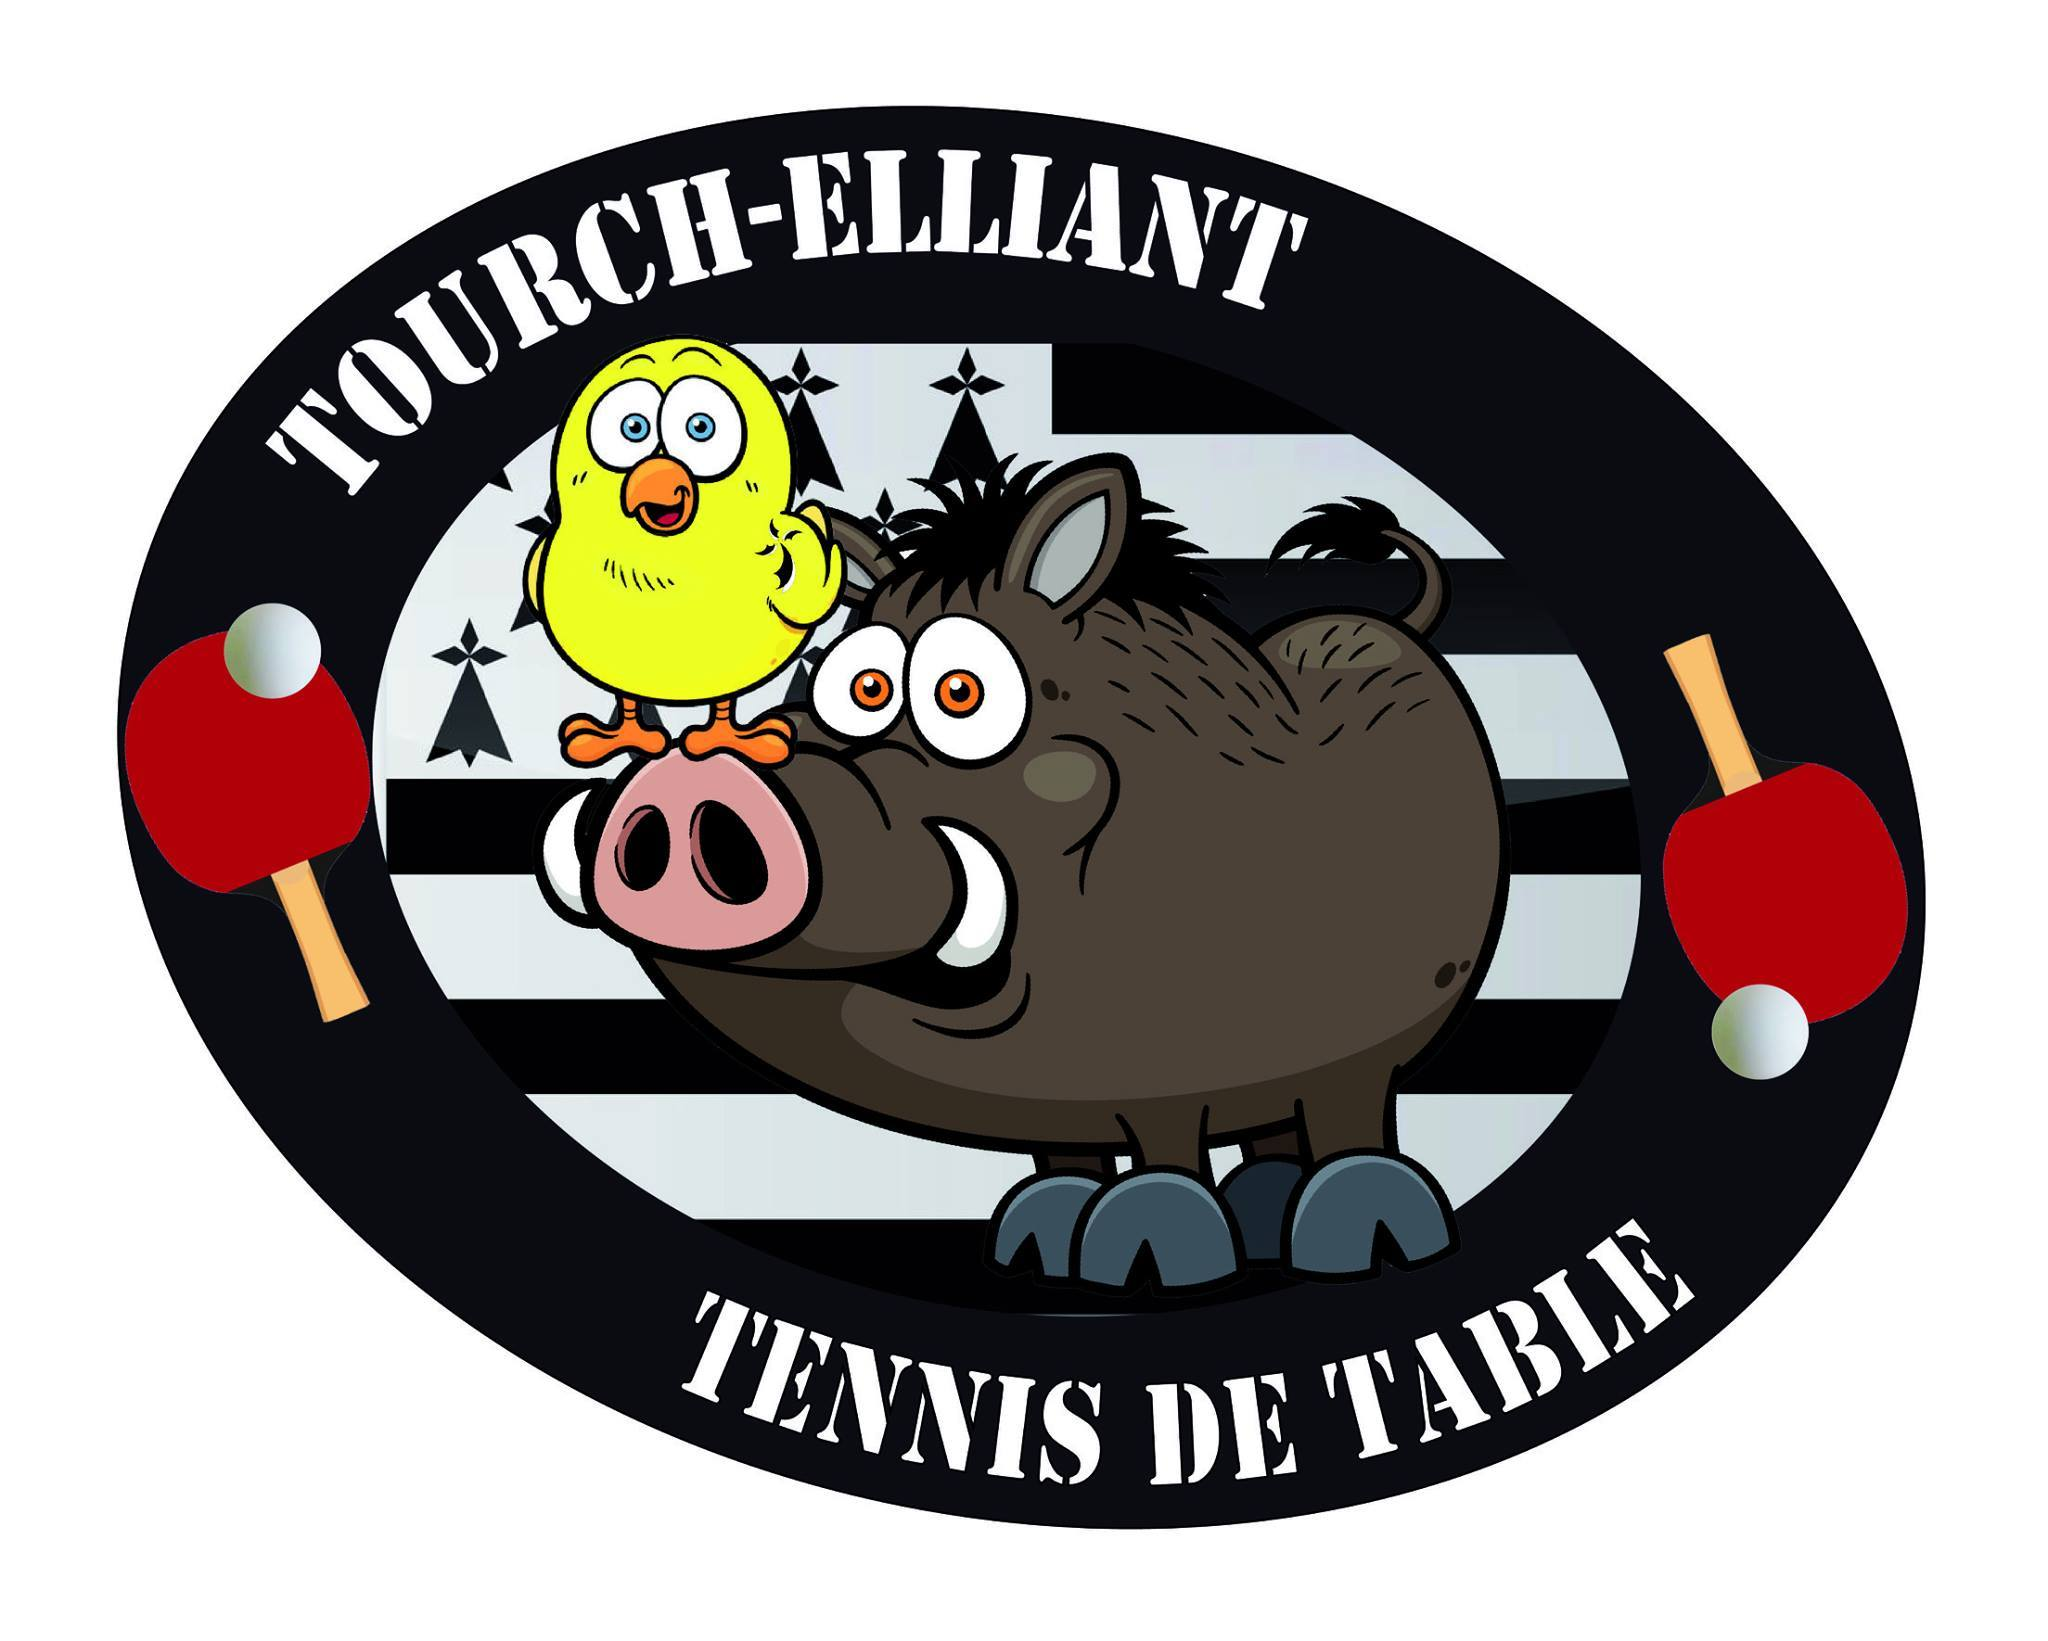 Tourc'h-Elliant Tennis de table